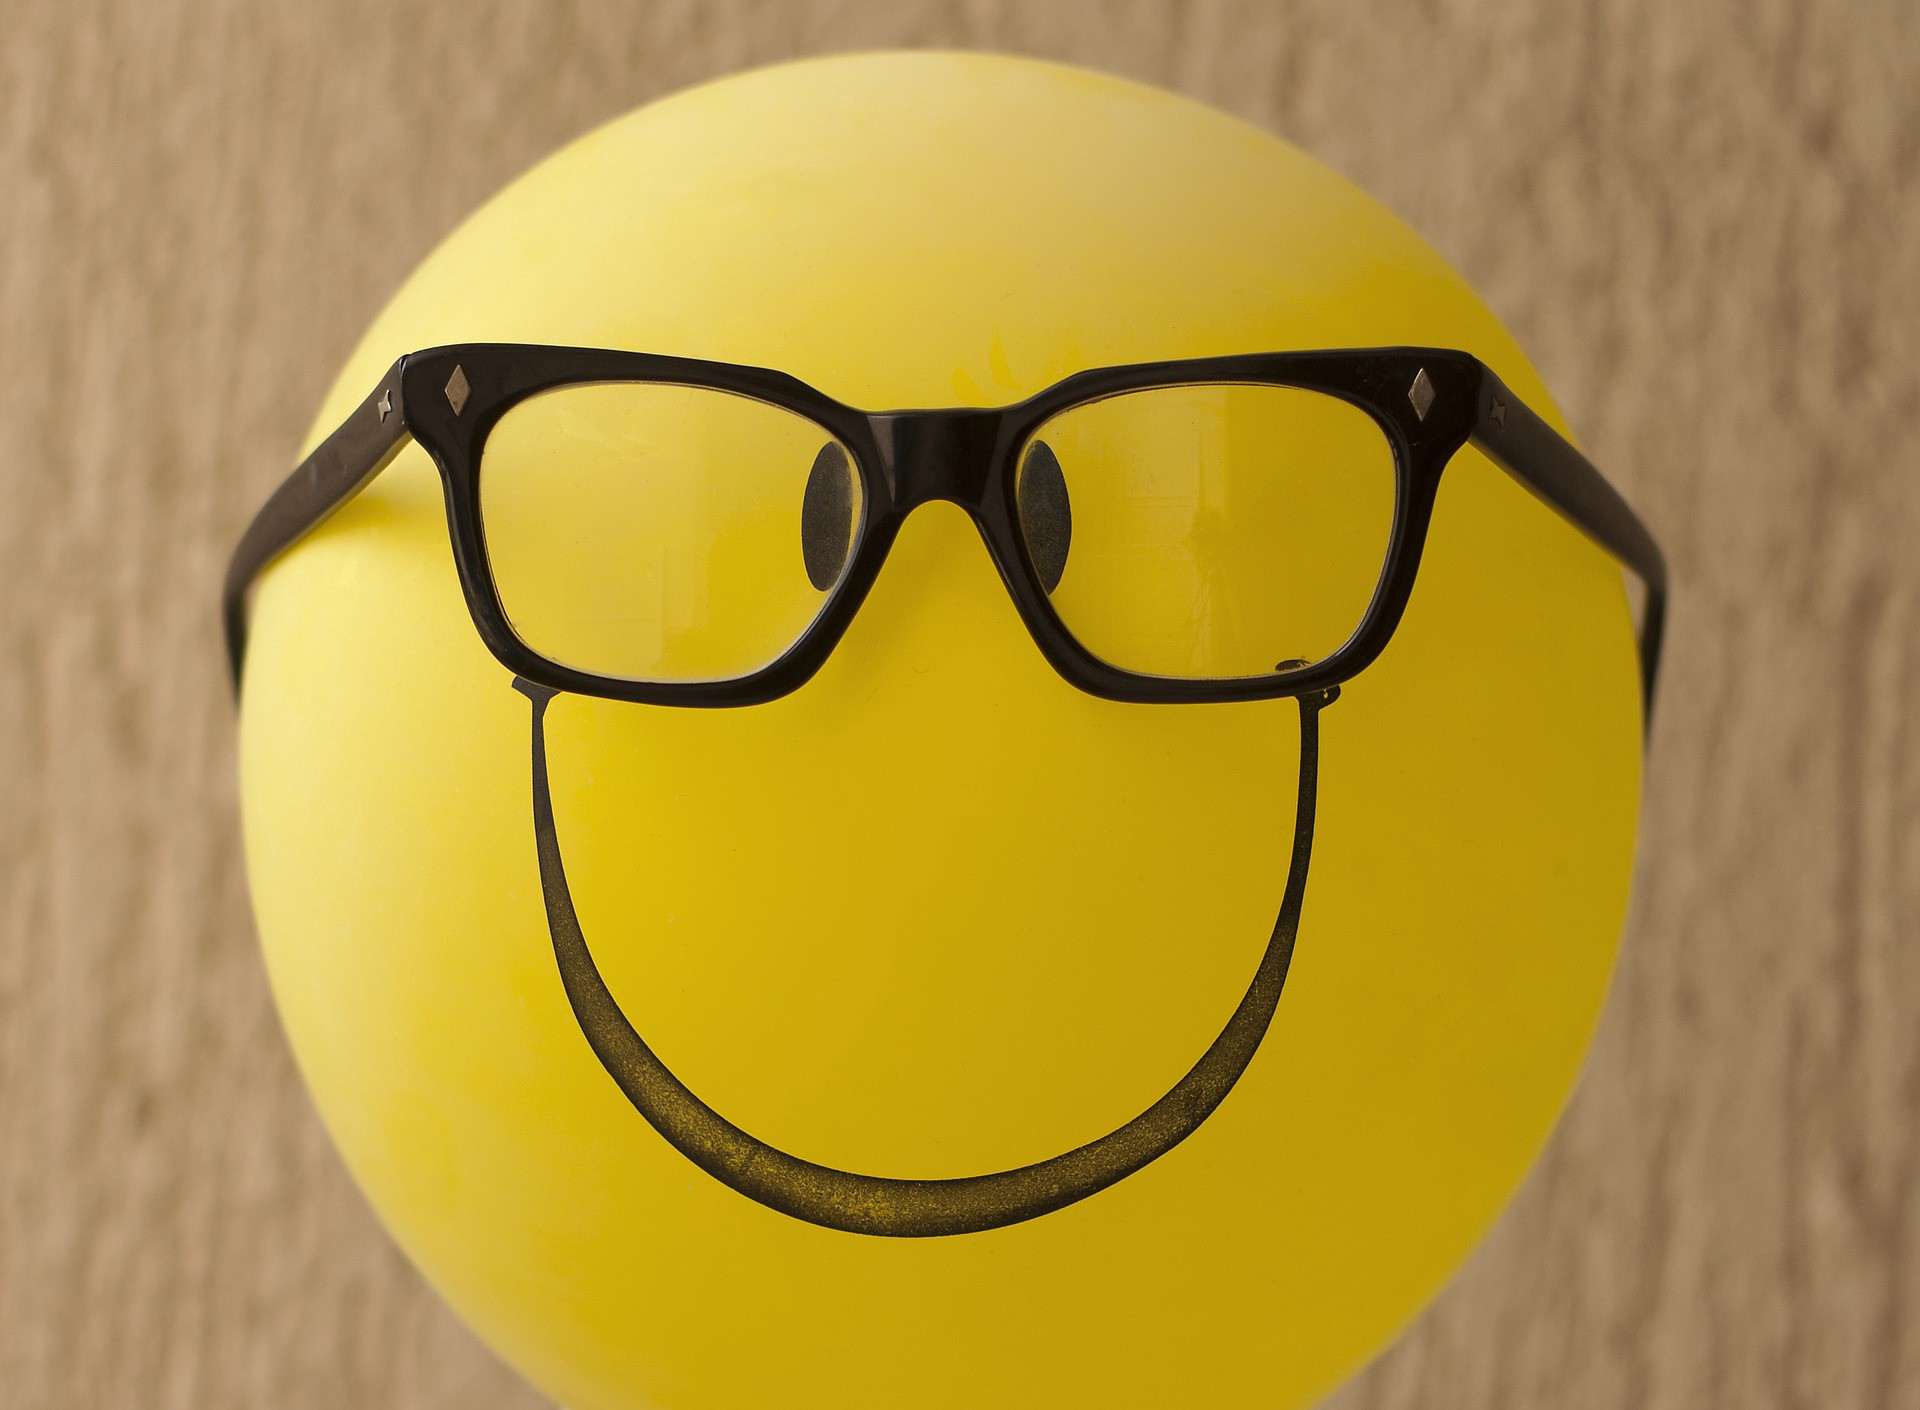 A yellow balloon with eyes and nose drawn on with marker and a pair of real glasses.